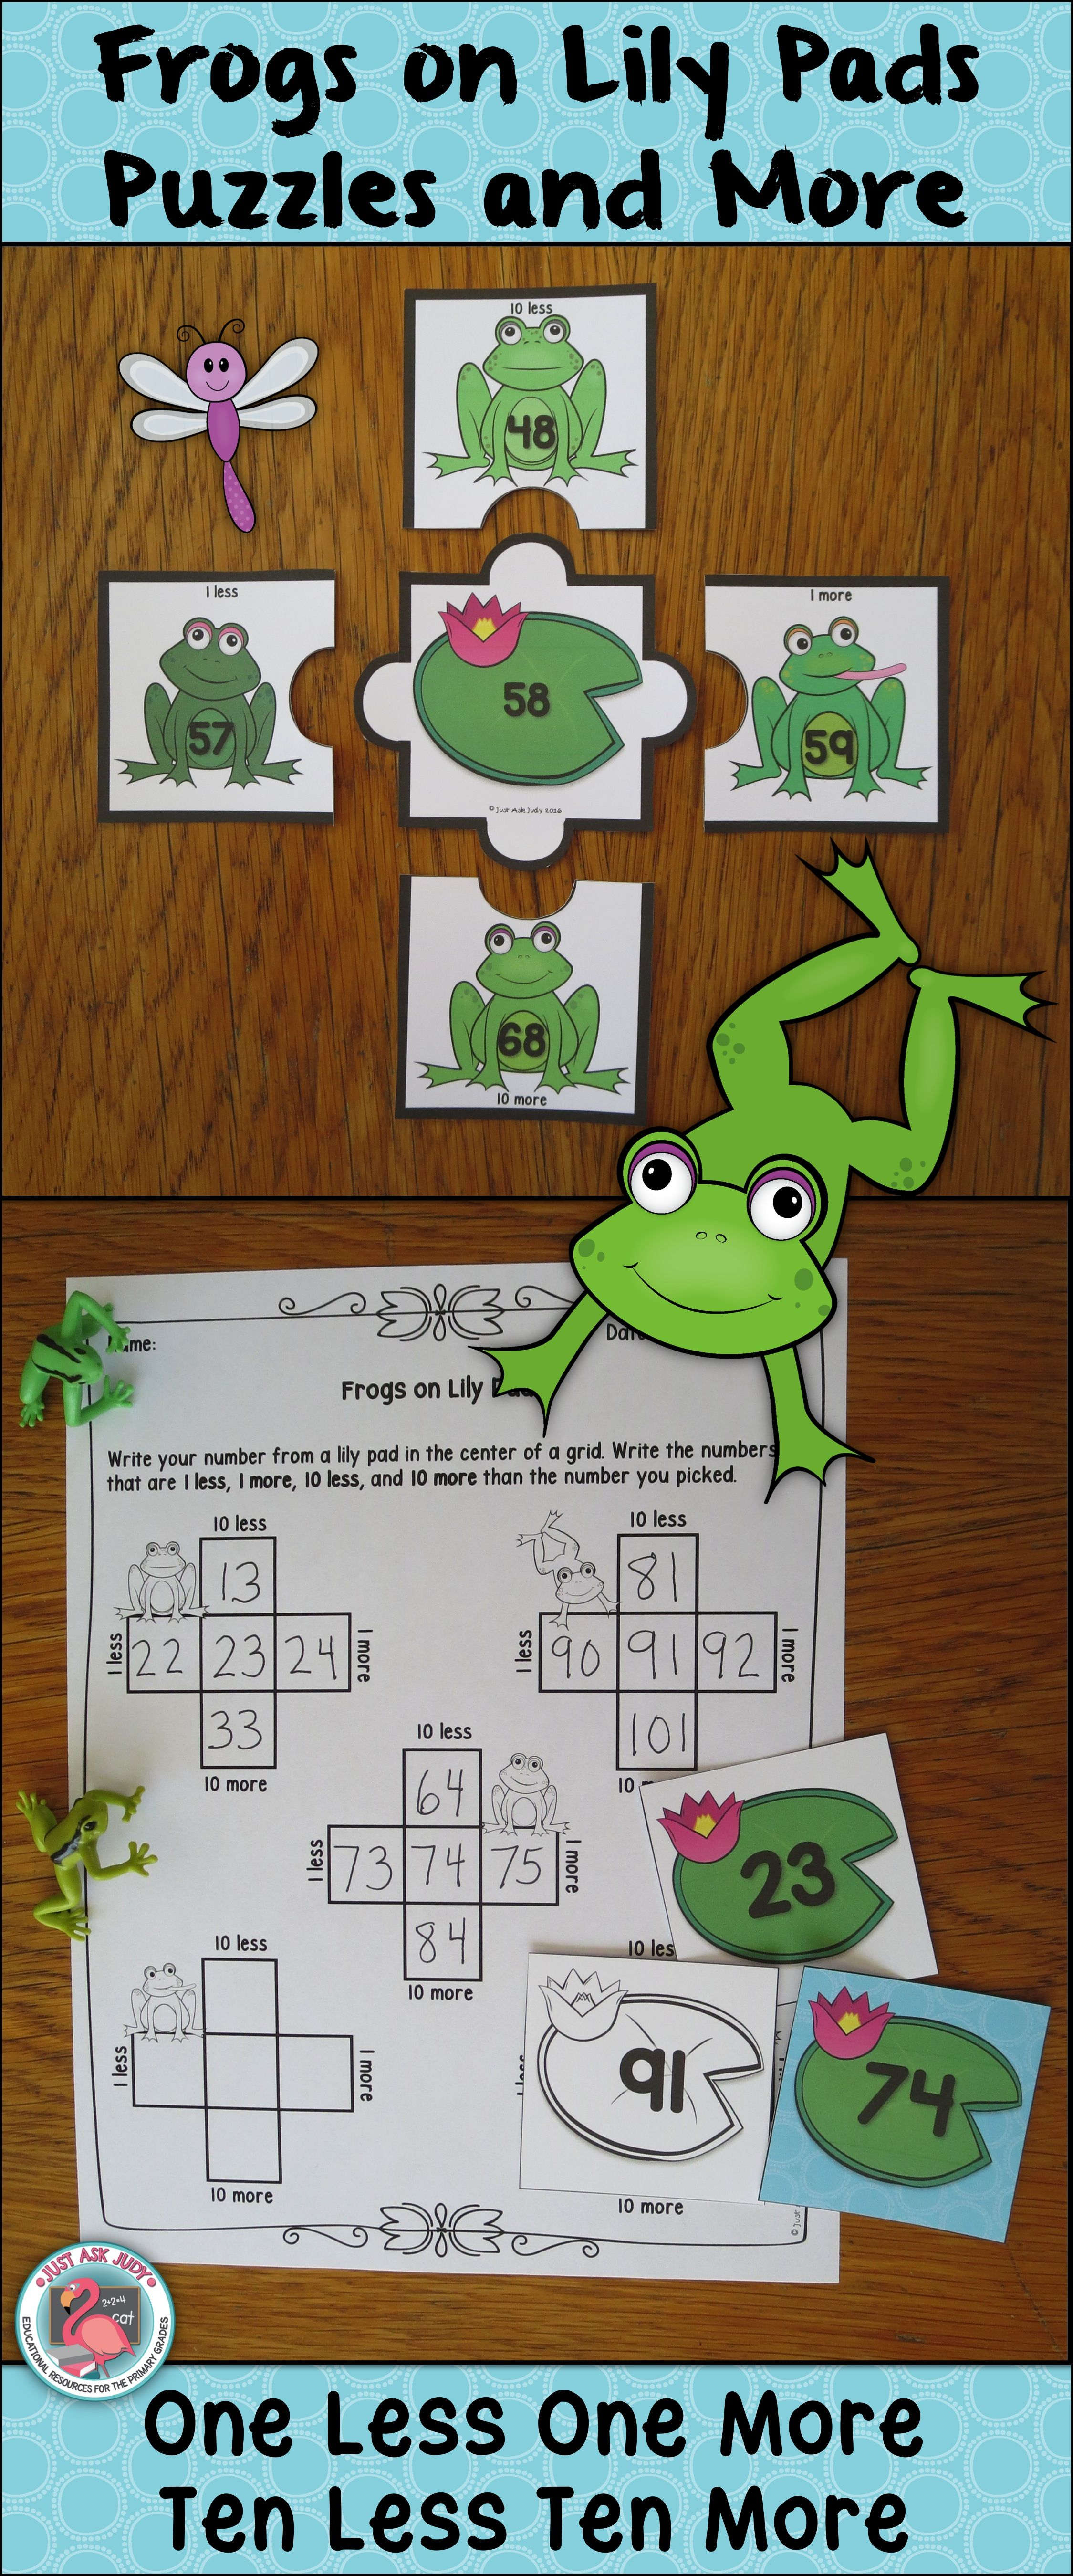 1 Less 1 More 10 Less 10 More Puzzles 0 120 Frogs